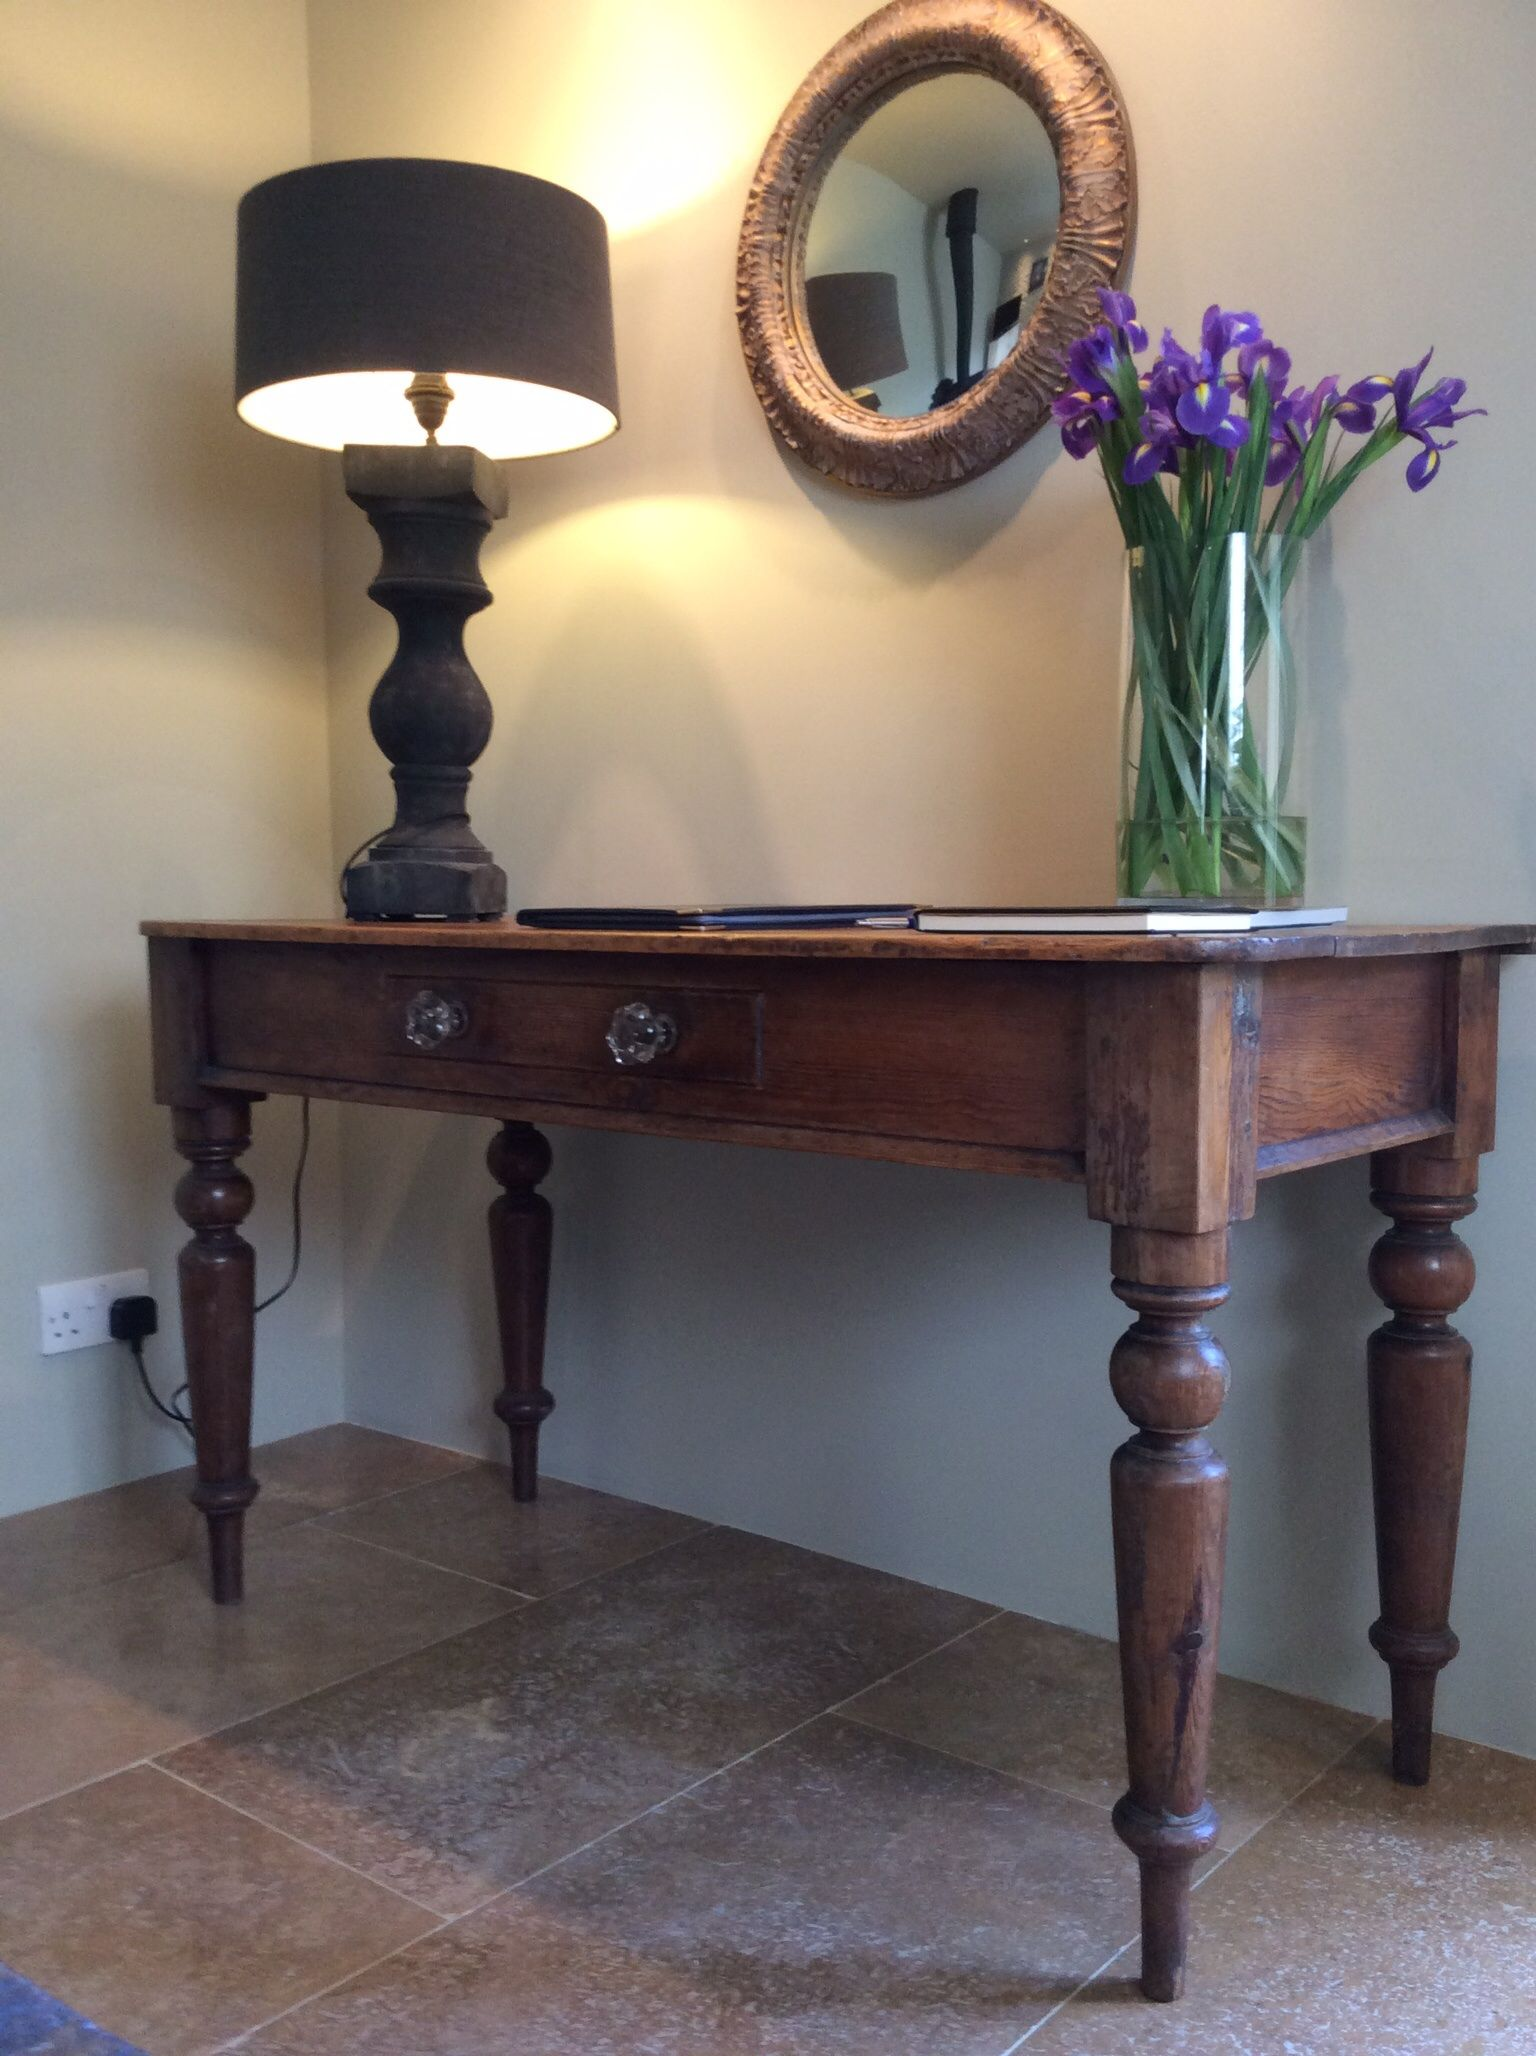 Balustrade table lamp from Anton and K, Winchcombe.